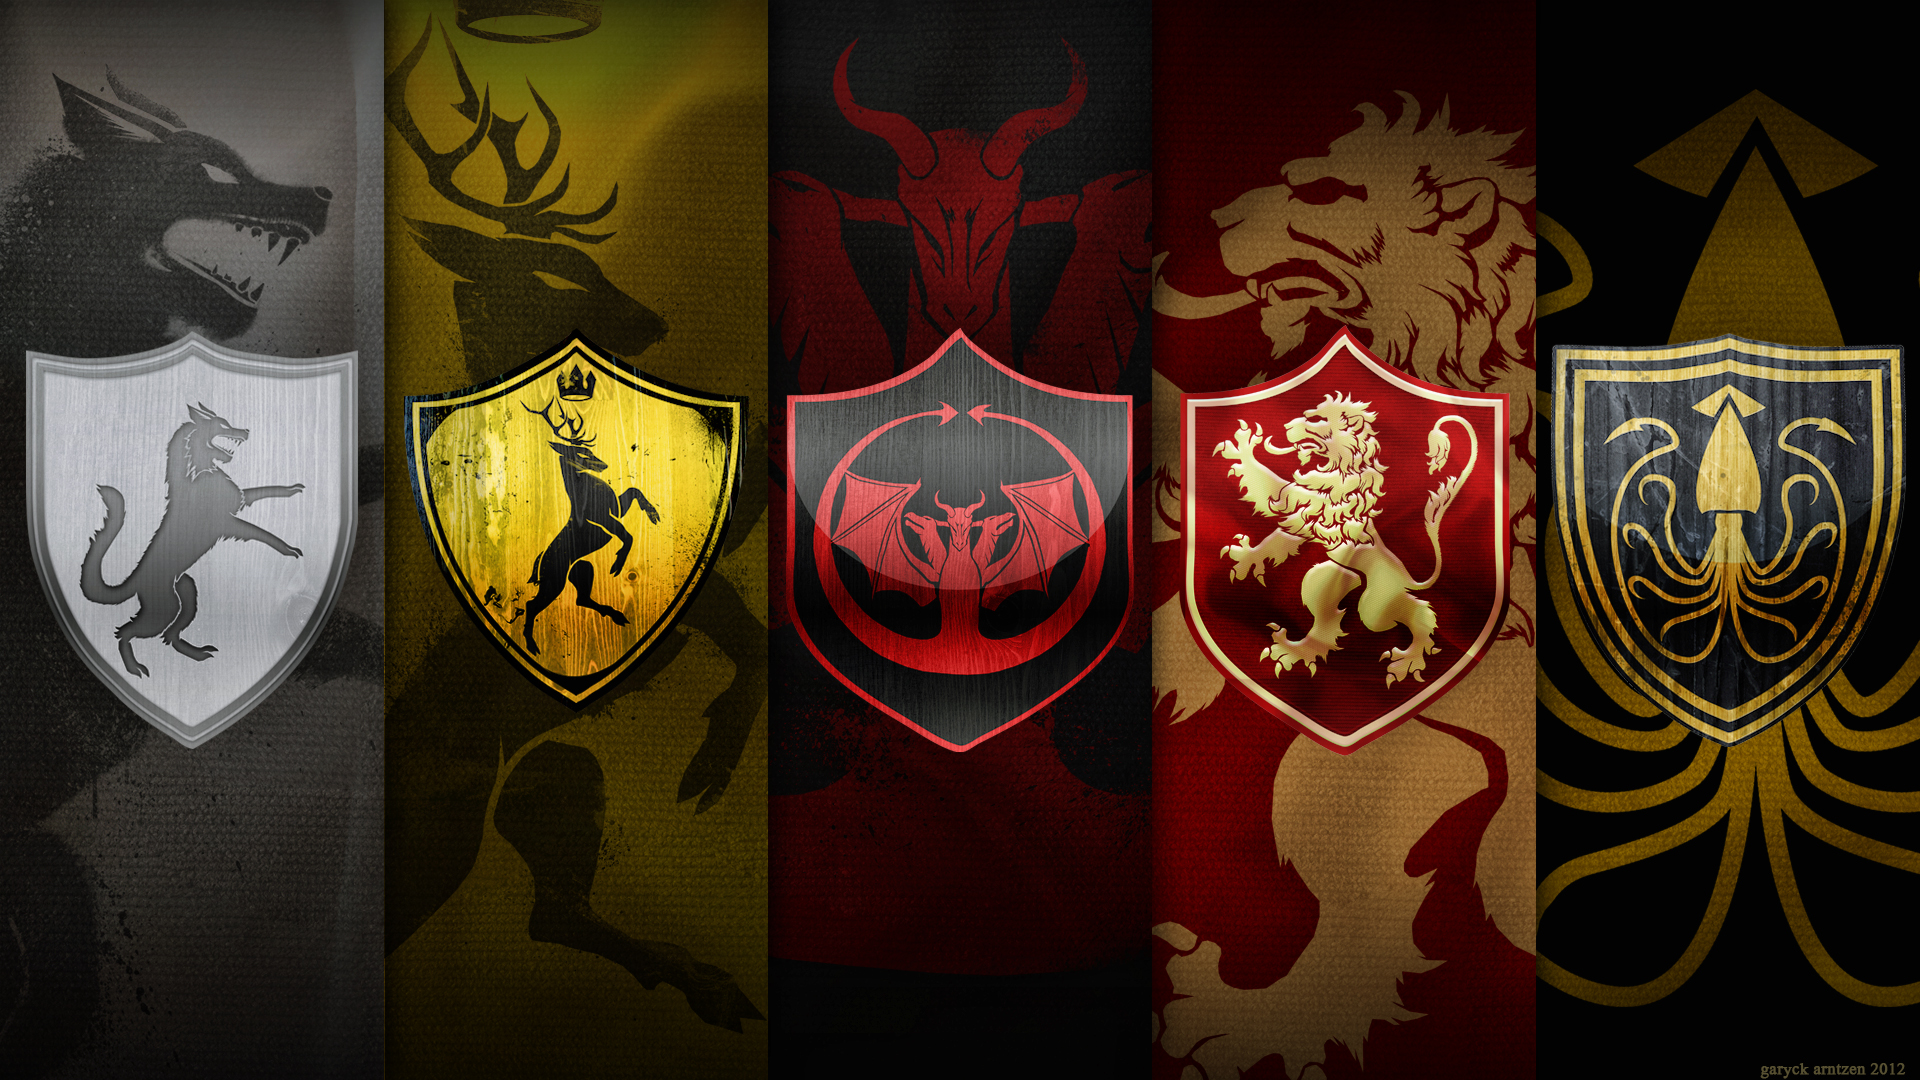 3840x2160 Game Of Thrones Hd Flag Wallpapers 4k Wallpaper